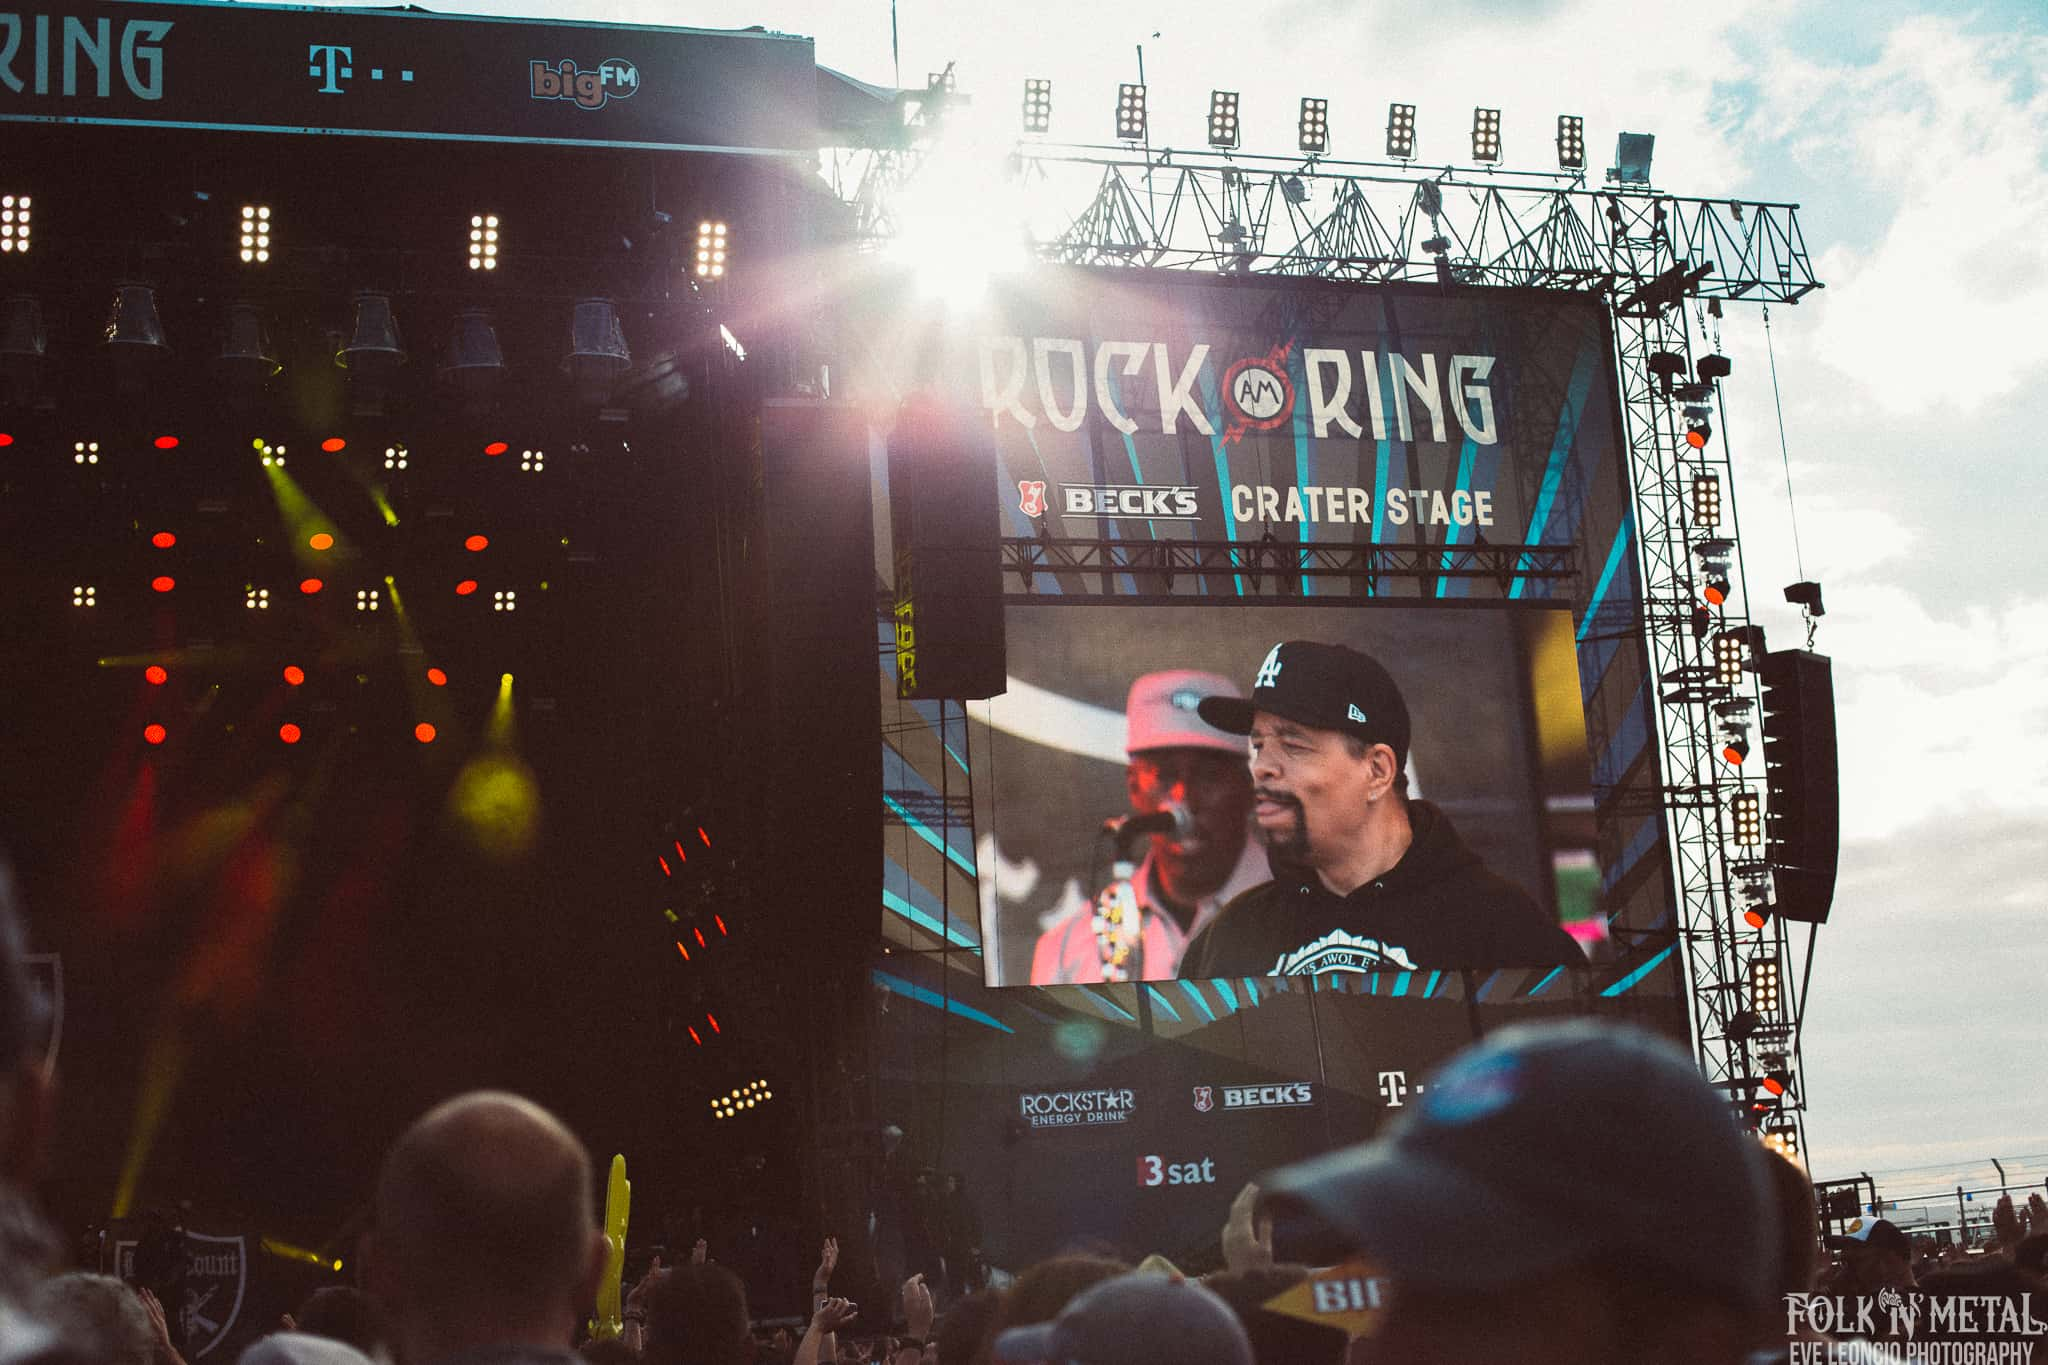 Rock Am ring (14)